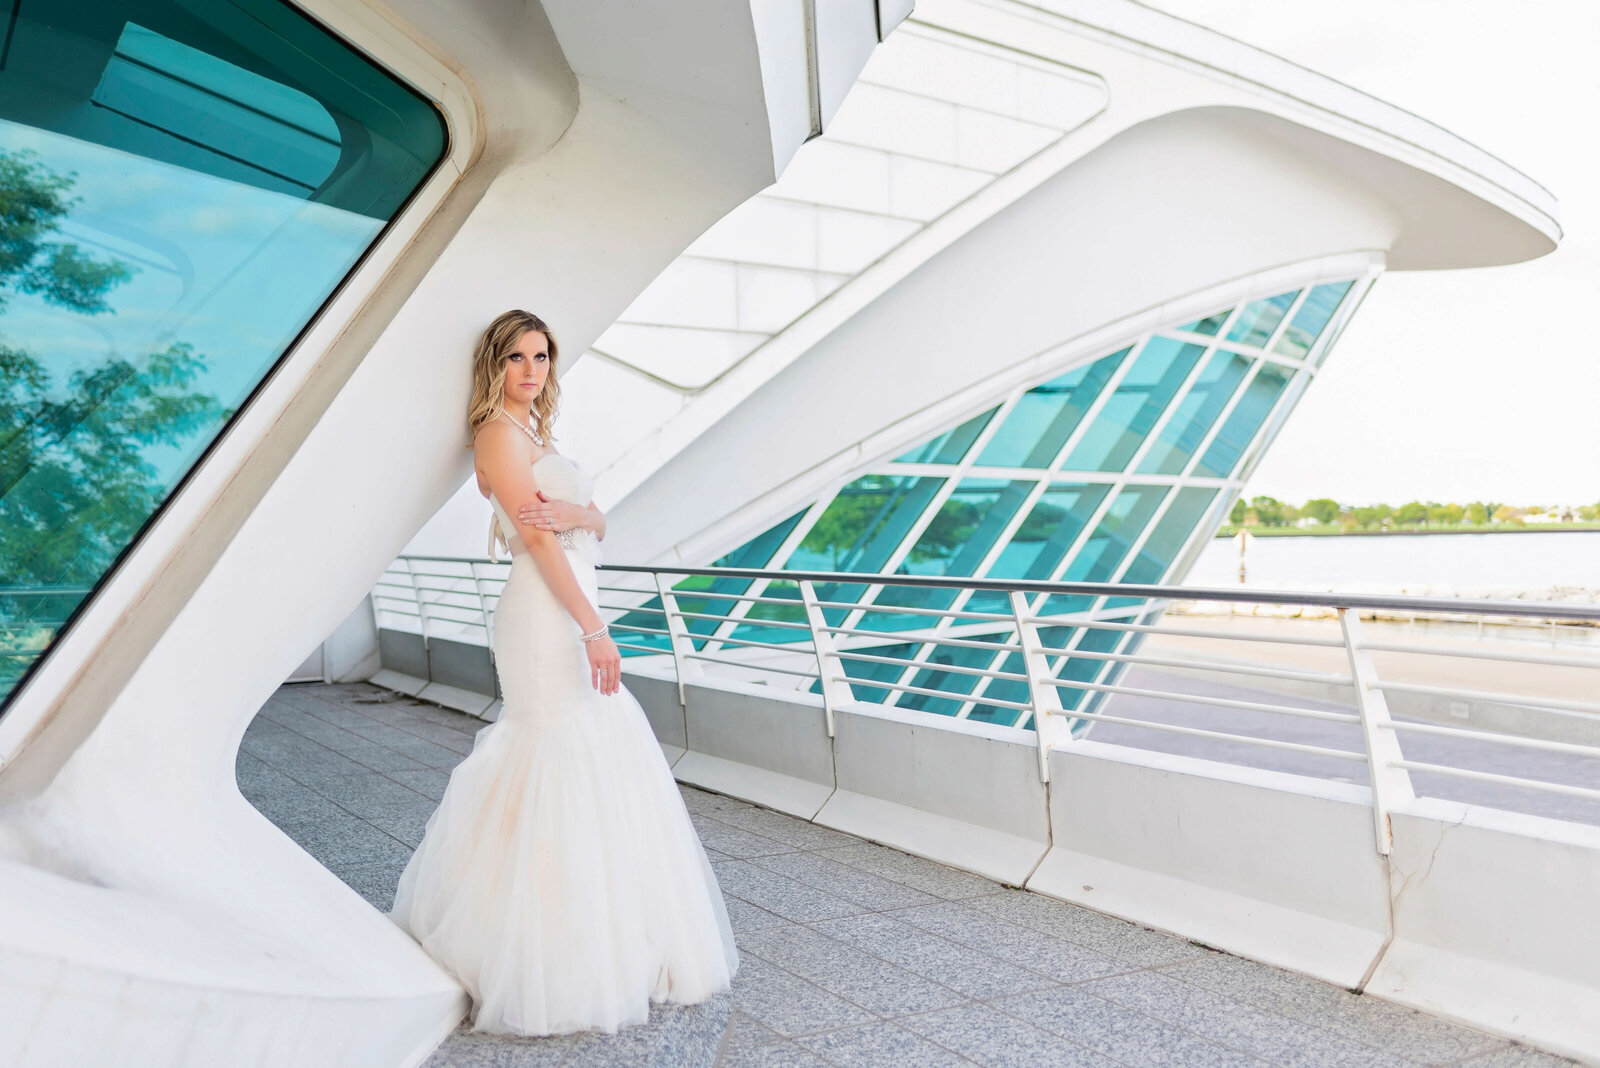 Wedding-Photographer-Discovery-World-Milwaukee-Wisconsin-54